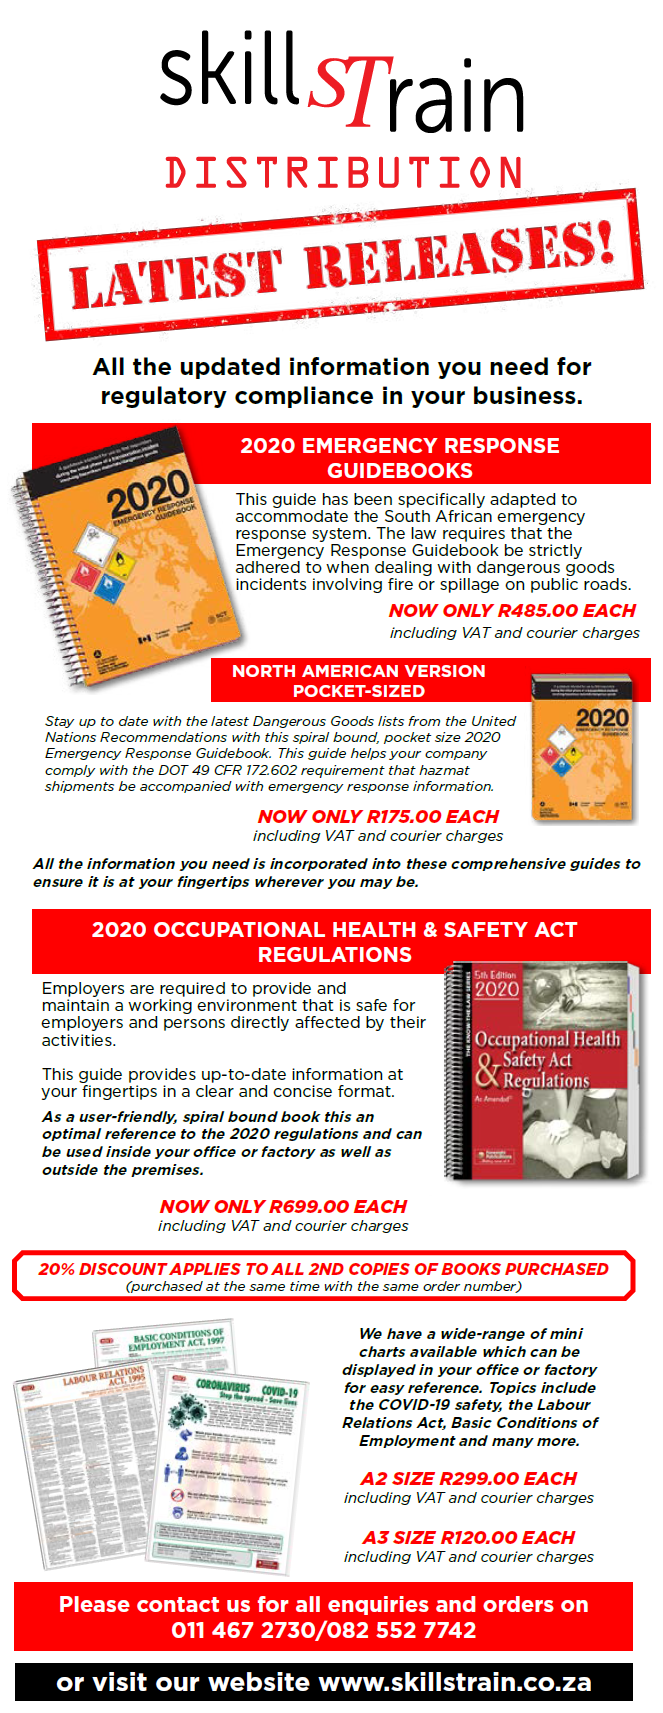 Occupational Health & Safety Guide Books